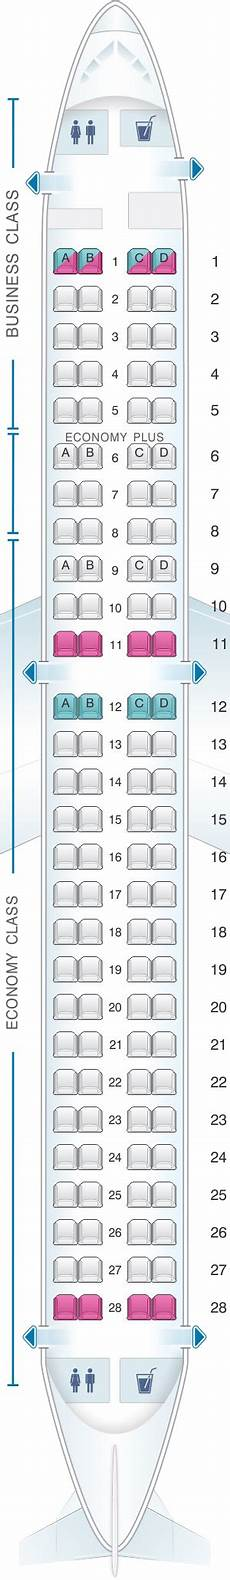 Lot Airlines Seating Chart Seat Map Lot Polish Airlines Embraer 195 Seatmaestro